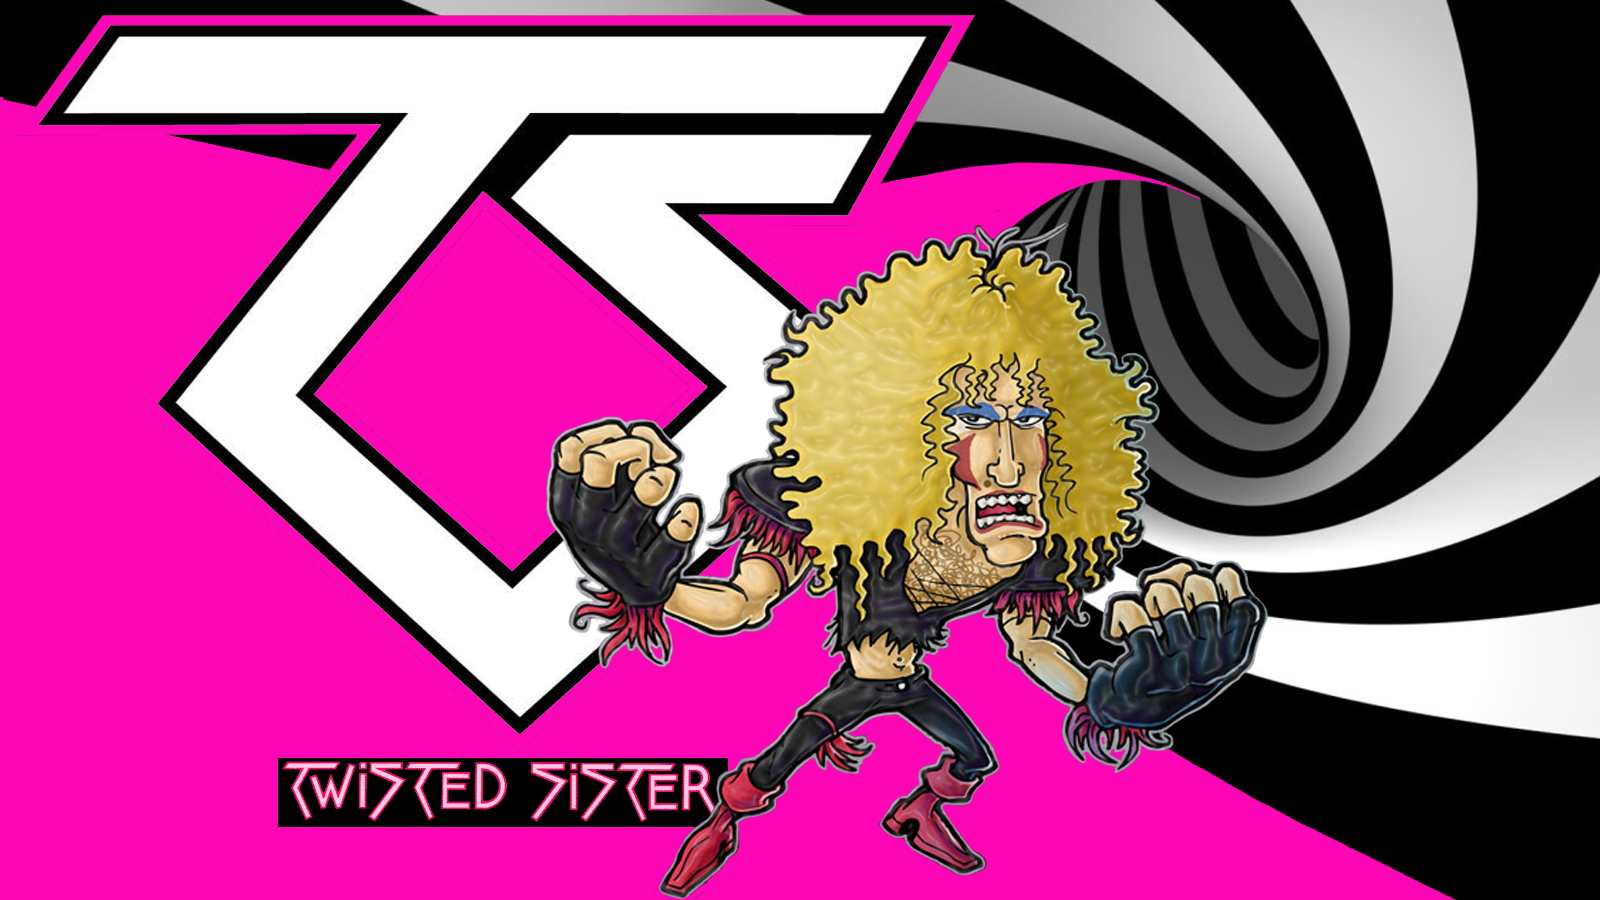 Twisted Sister Wallpaper And Background Image